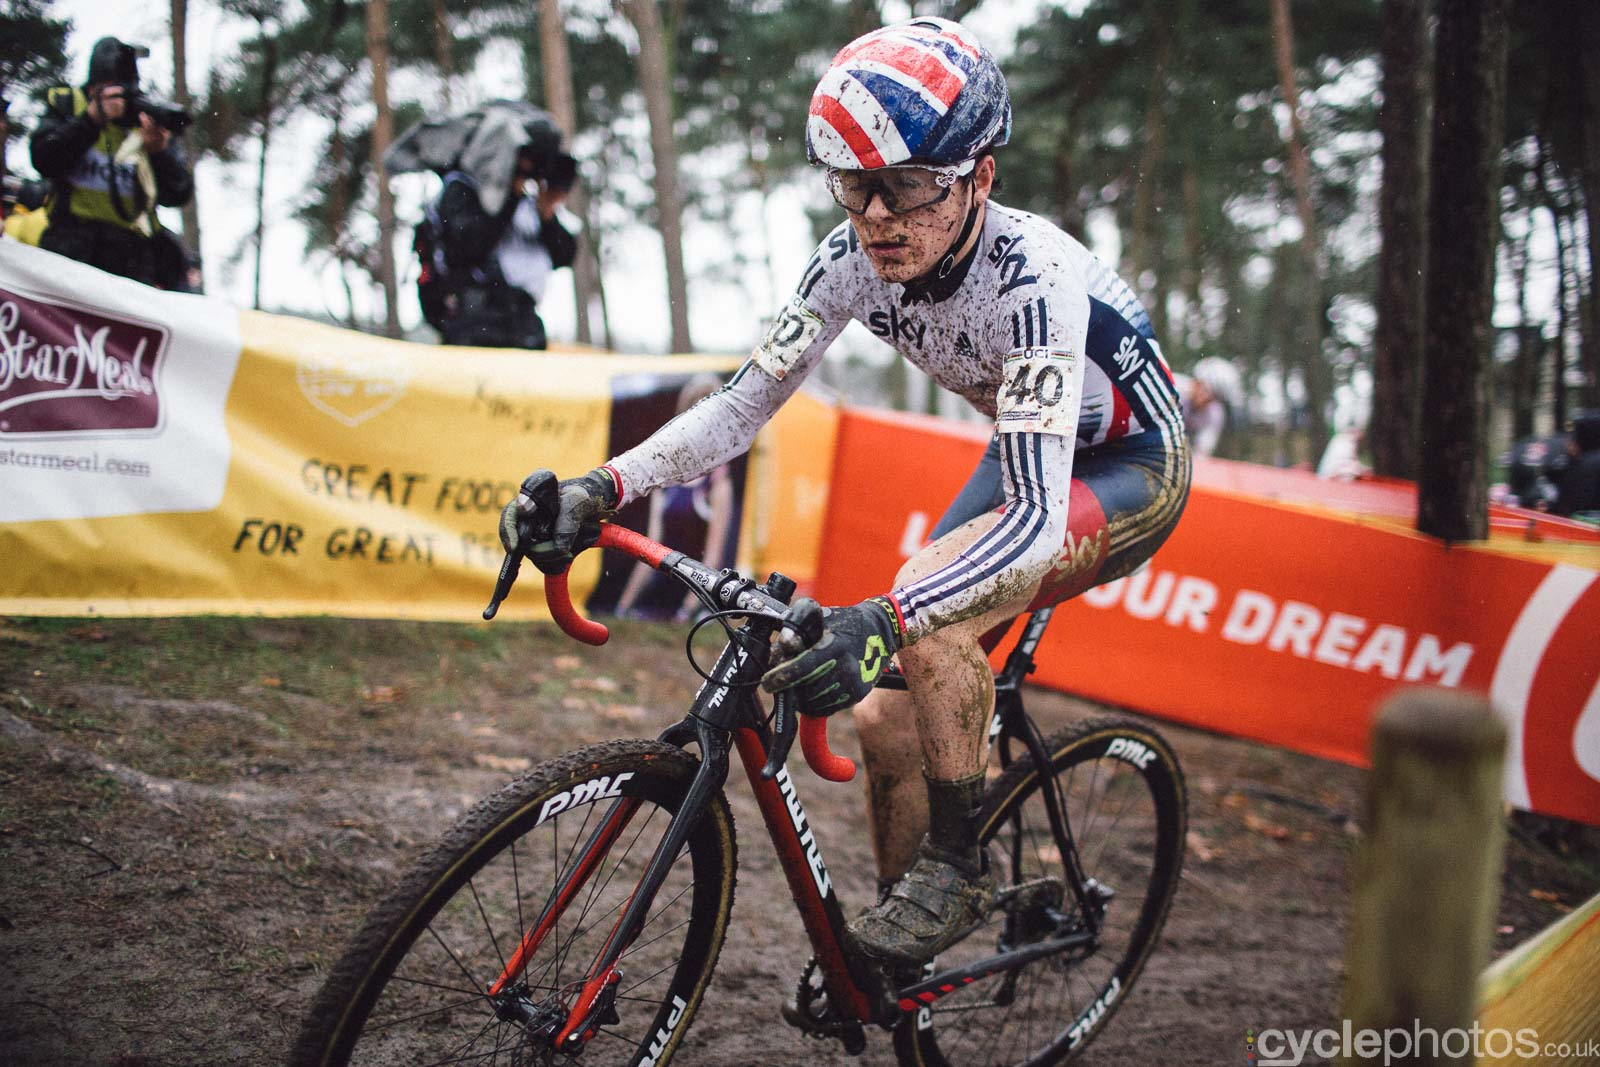 2016-cyclephotos-cyclocross-world-championships-zolder-111220-thomas-pidcock